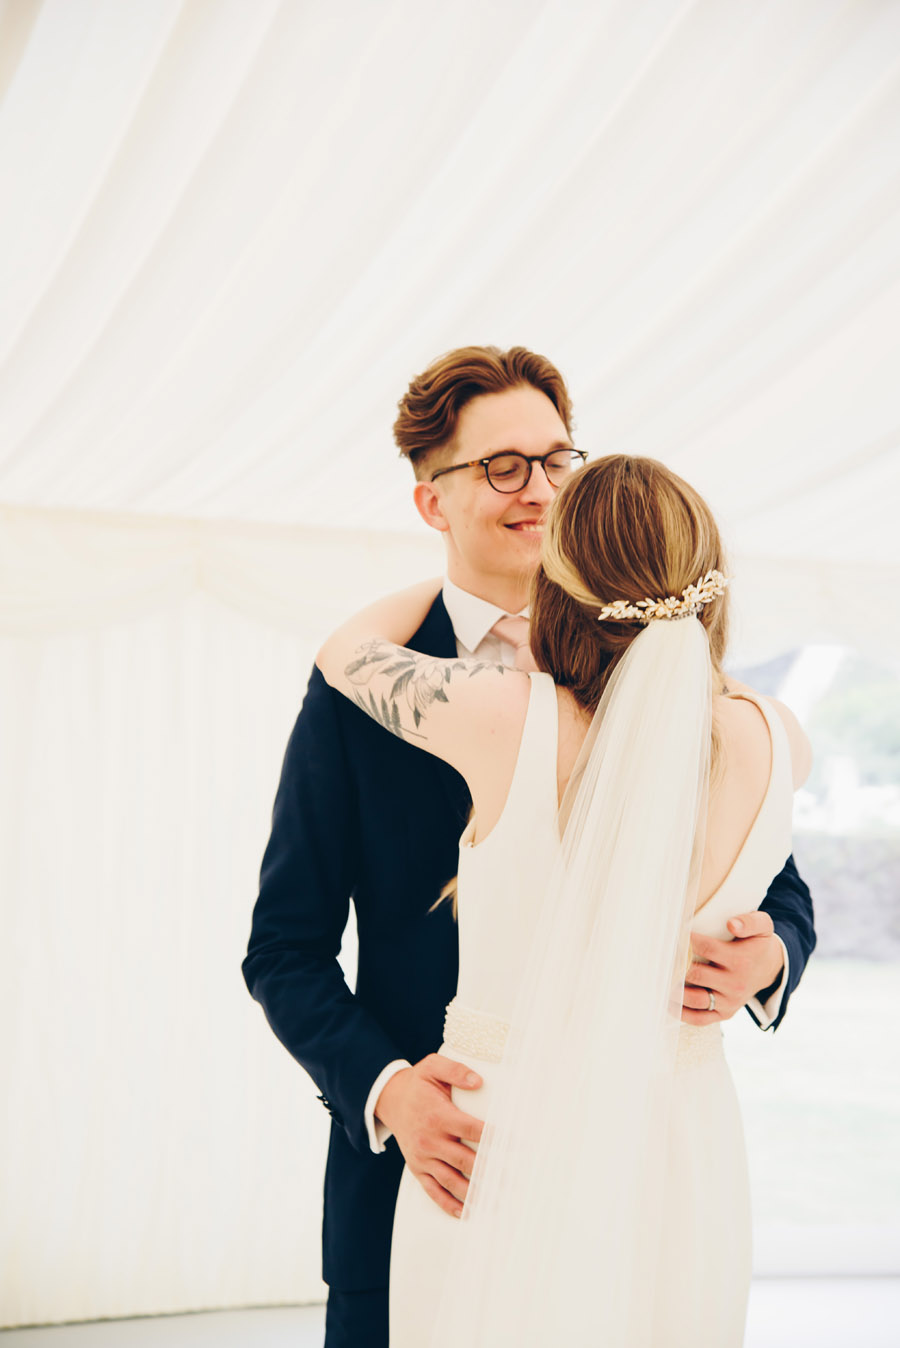 Timeless Elegance and beautiful micro wedding inspiration at New Lodge Lawns (31)